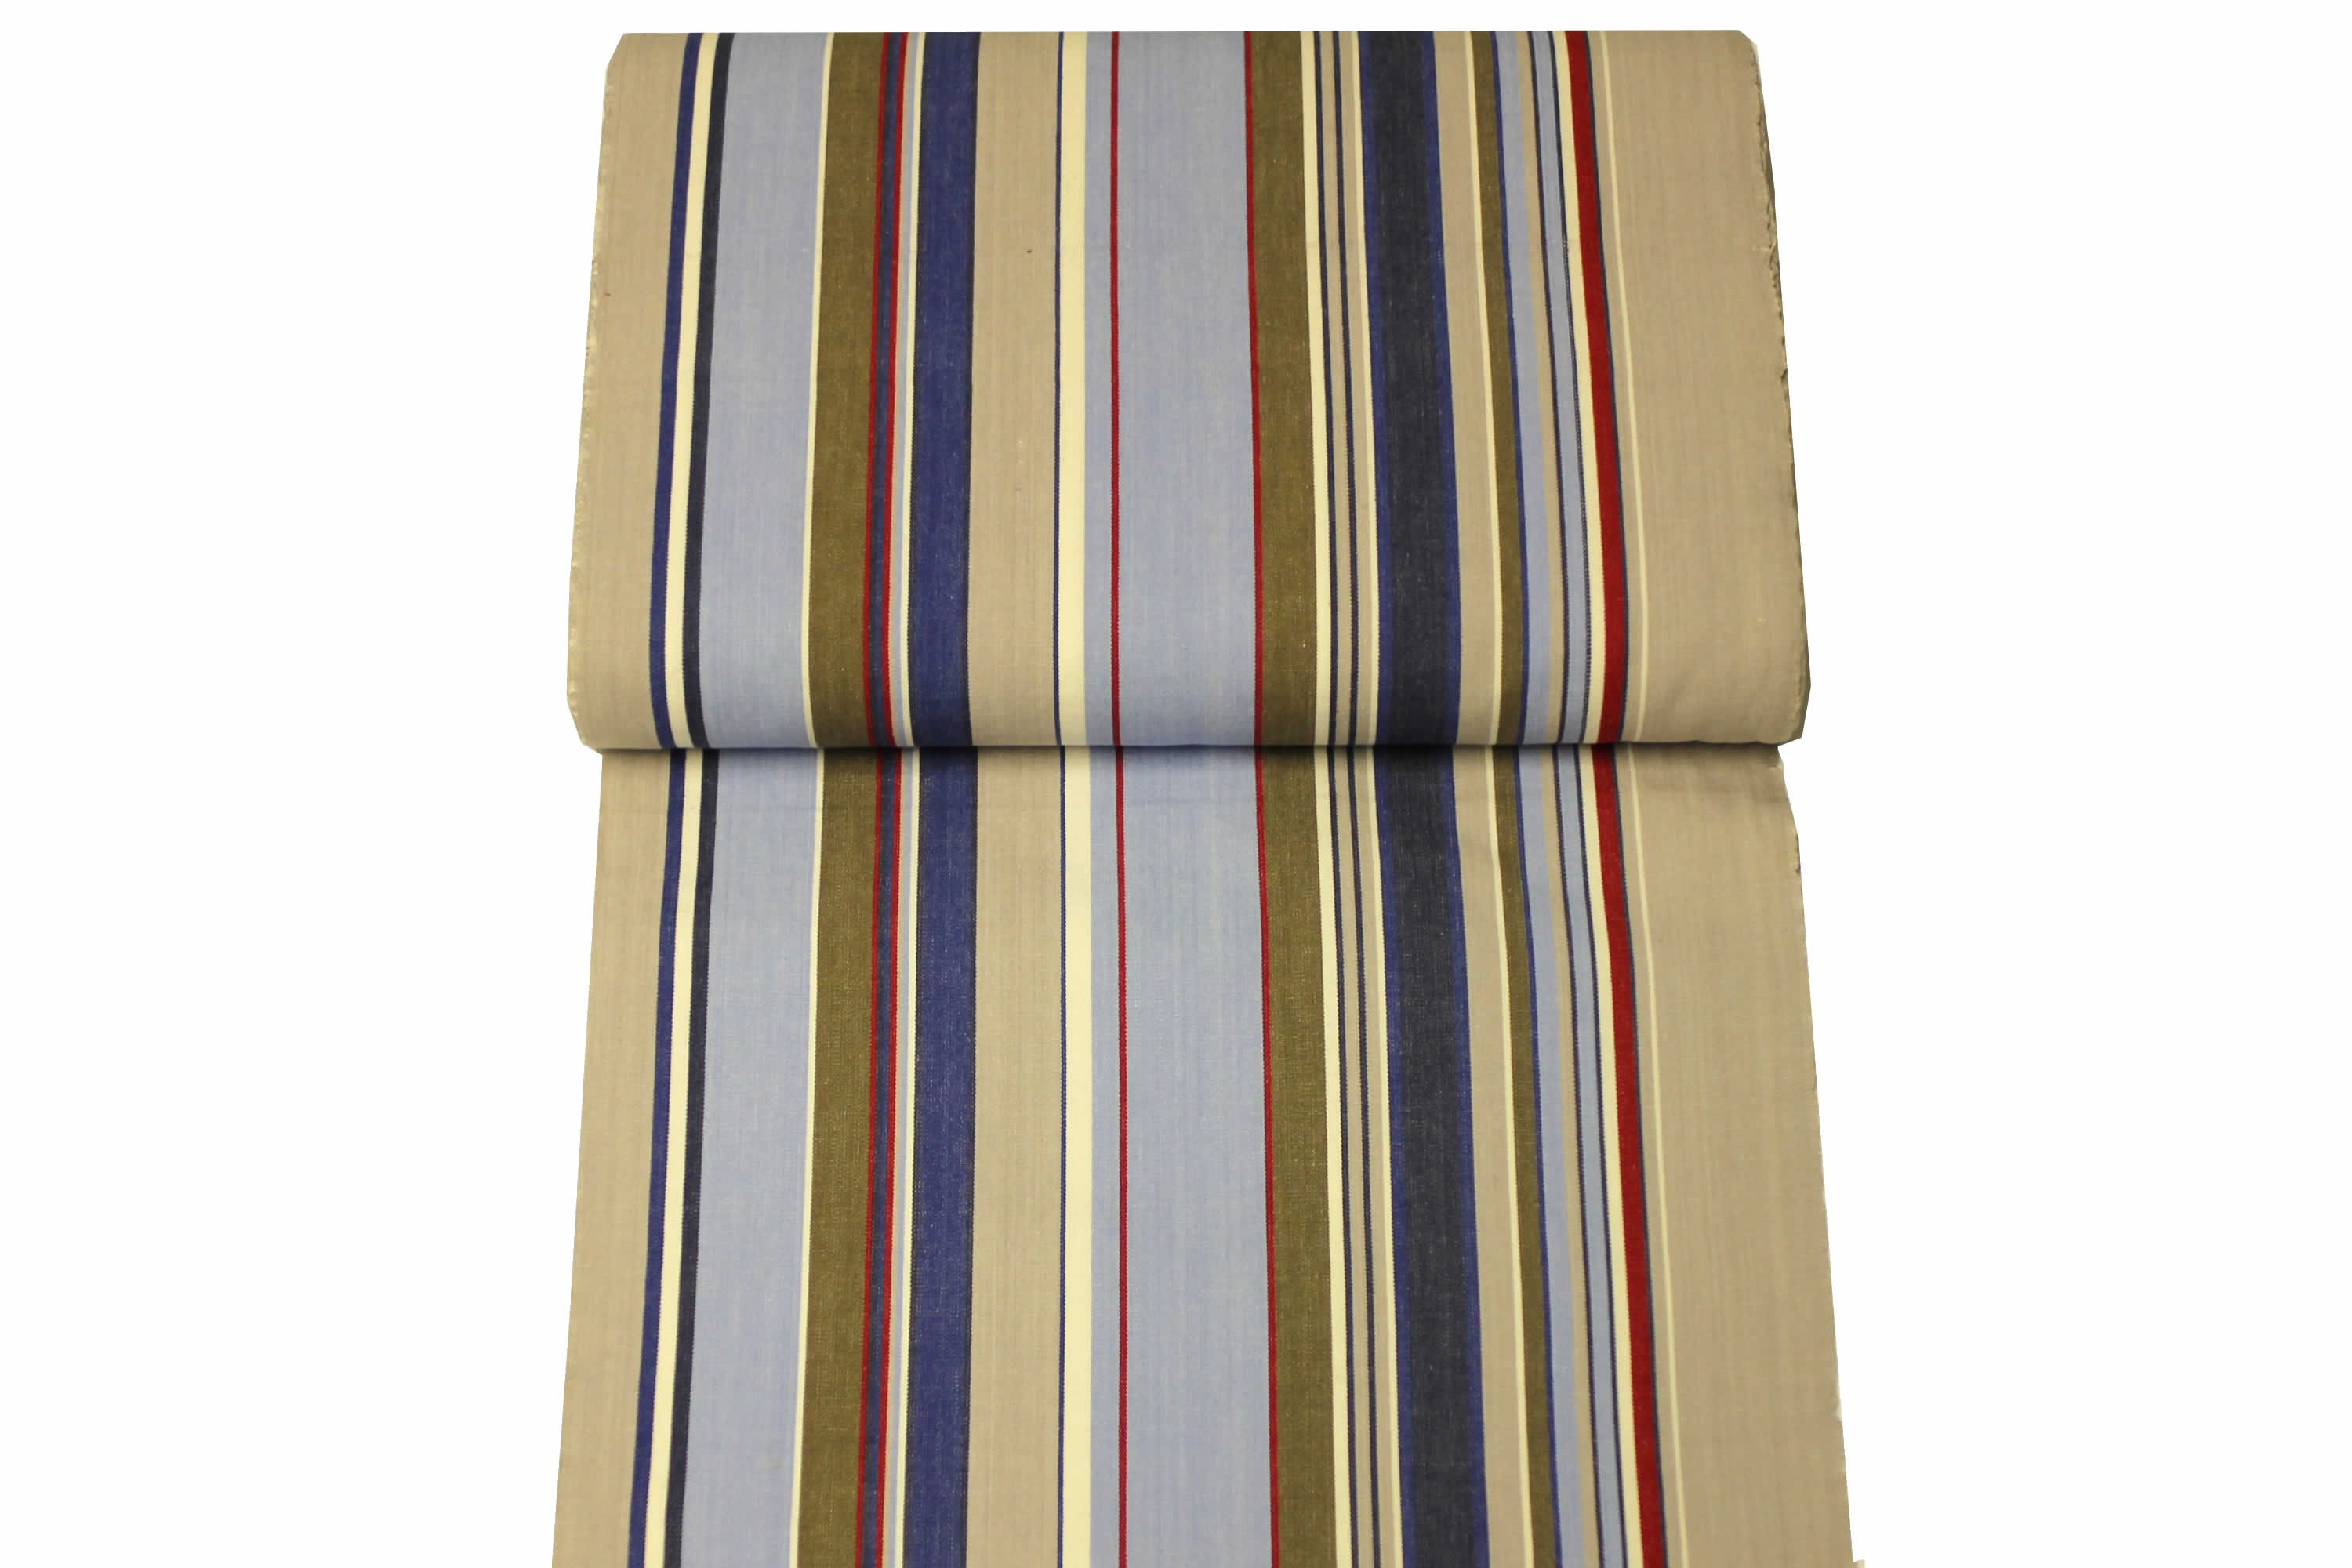 Pale Blue Deckchair Canvas | Striped Deck Chair Fabrics Trapeze Stripes